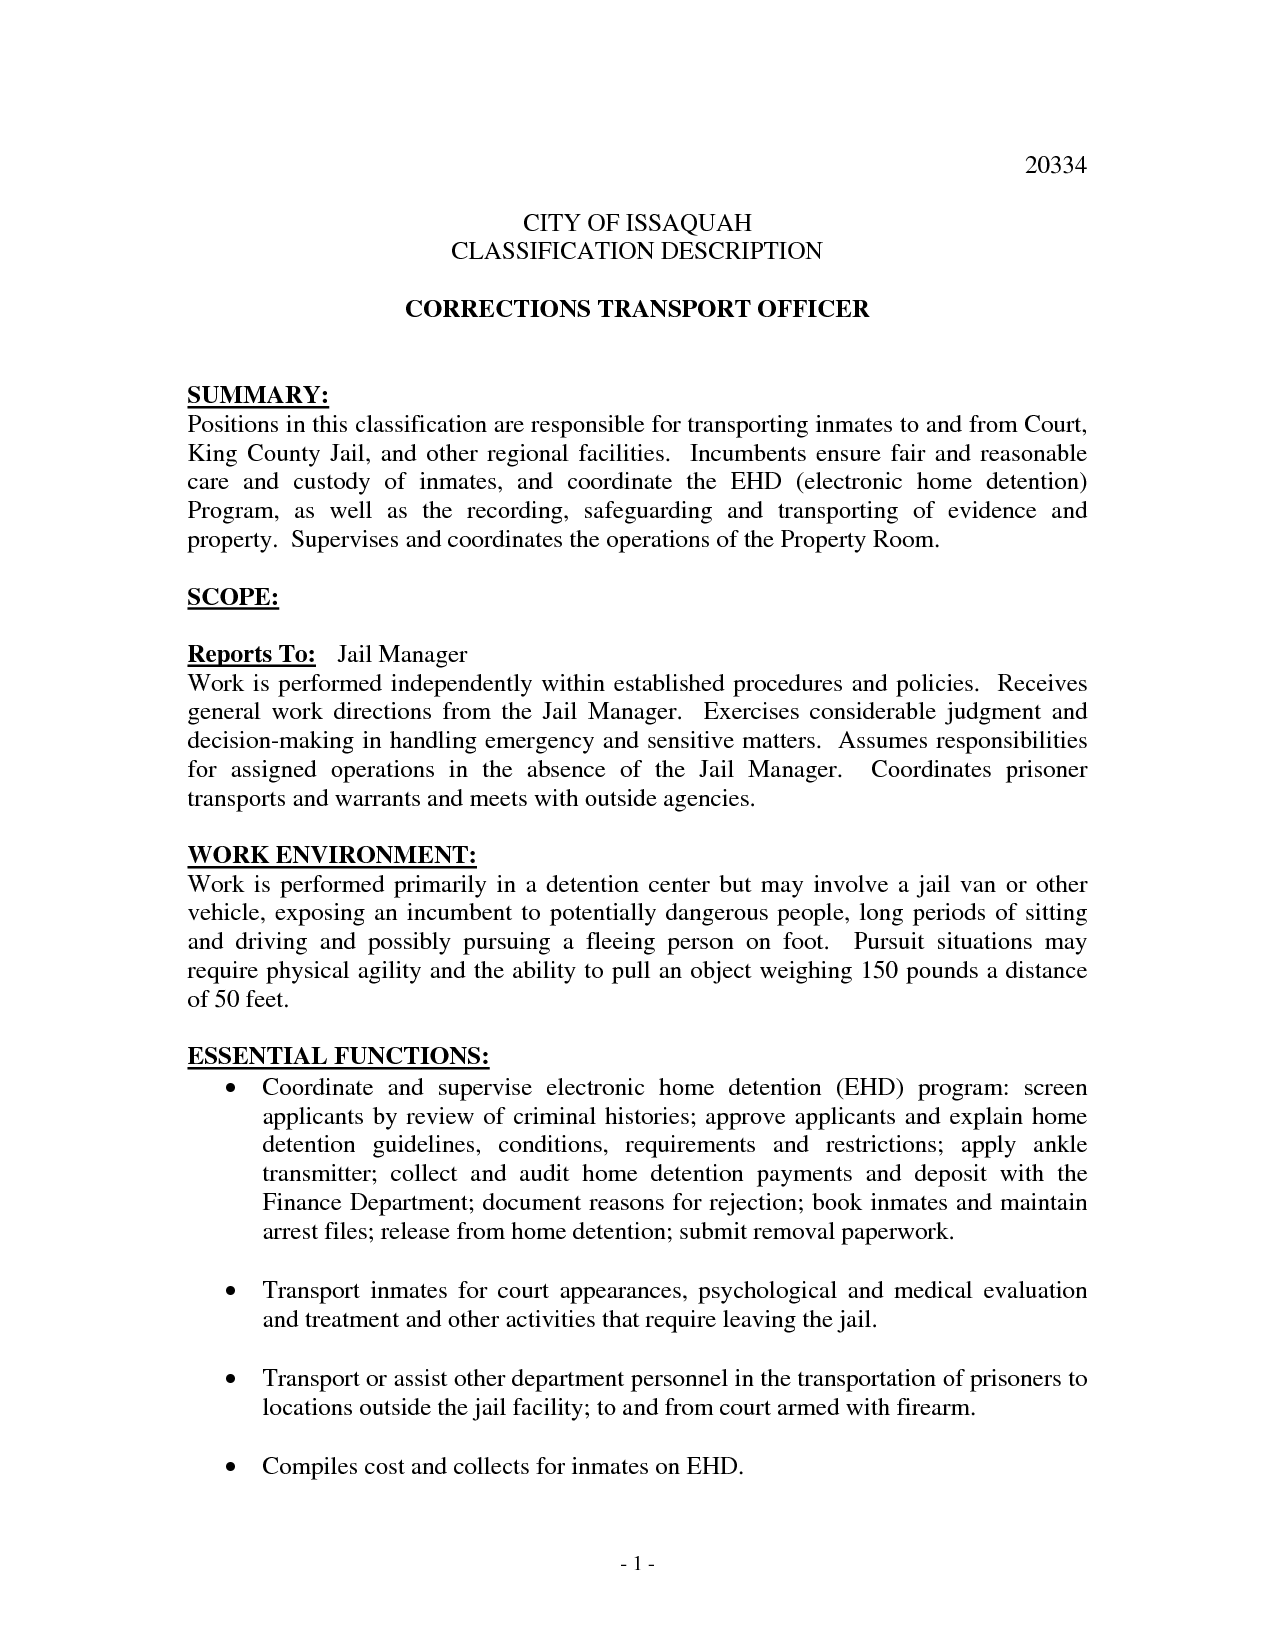 Correctional Officer Resume No Experience Http Www Jobresume